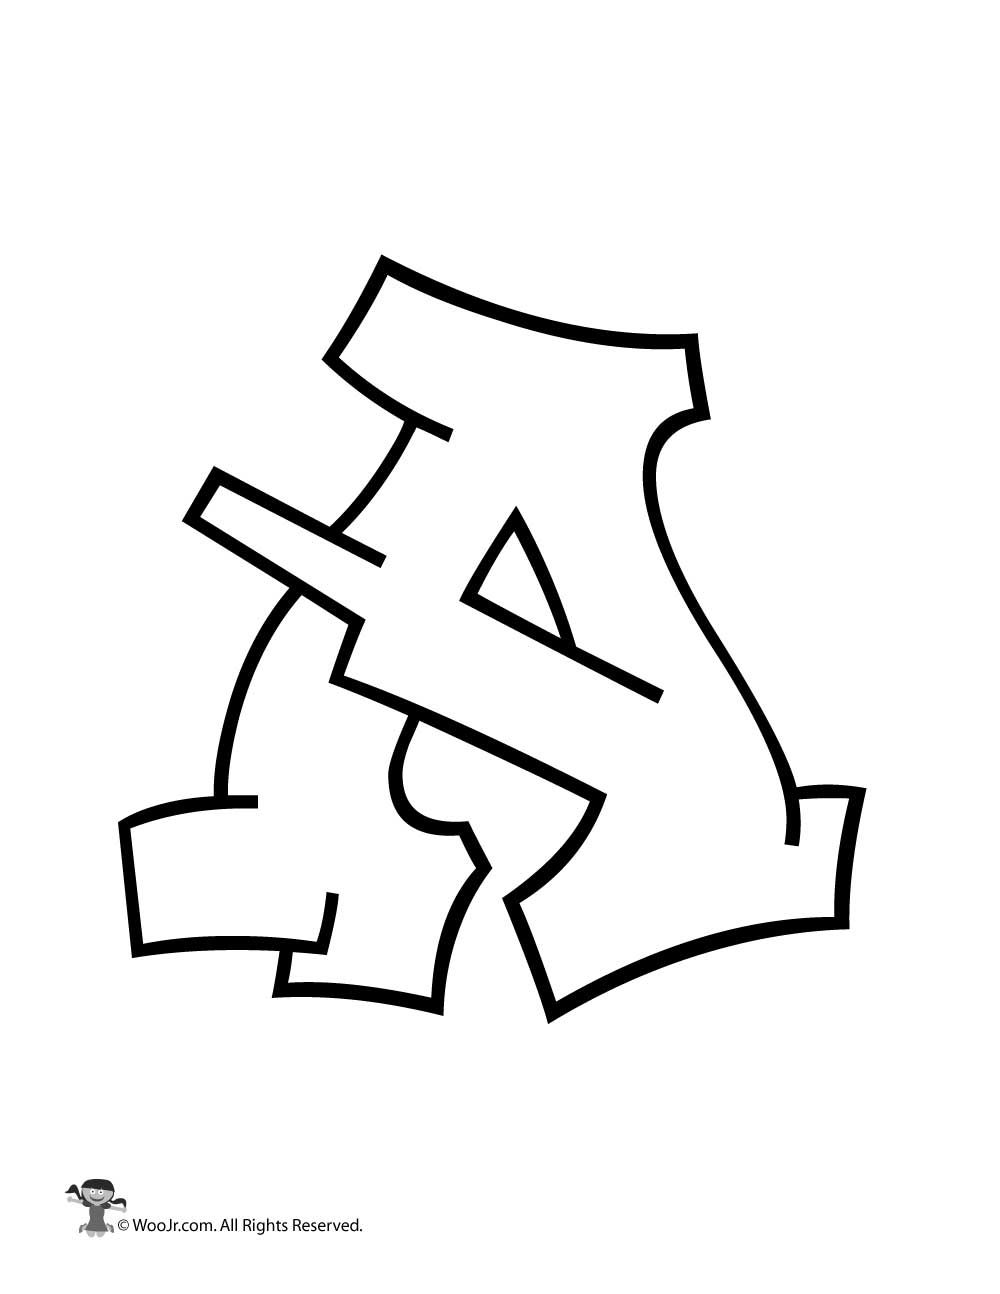 graffiti capital letter a